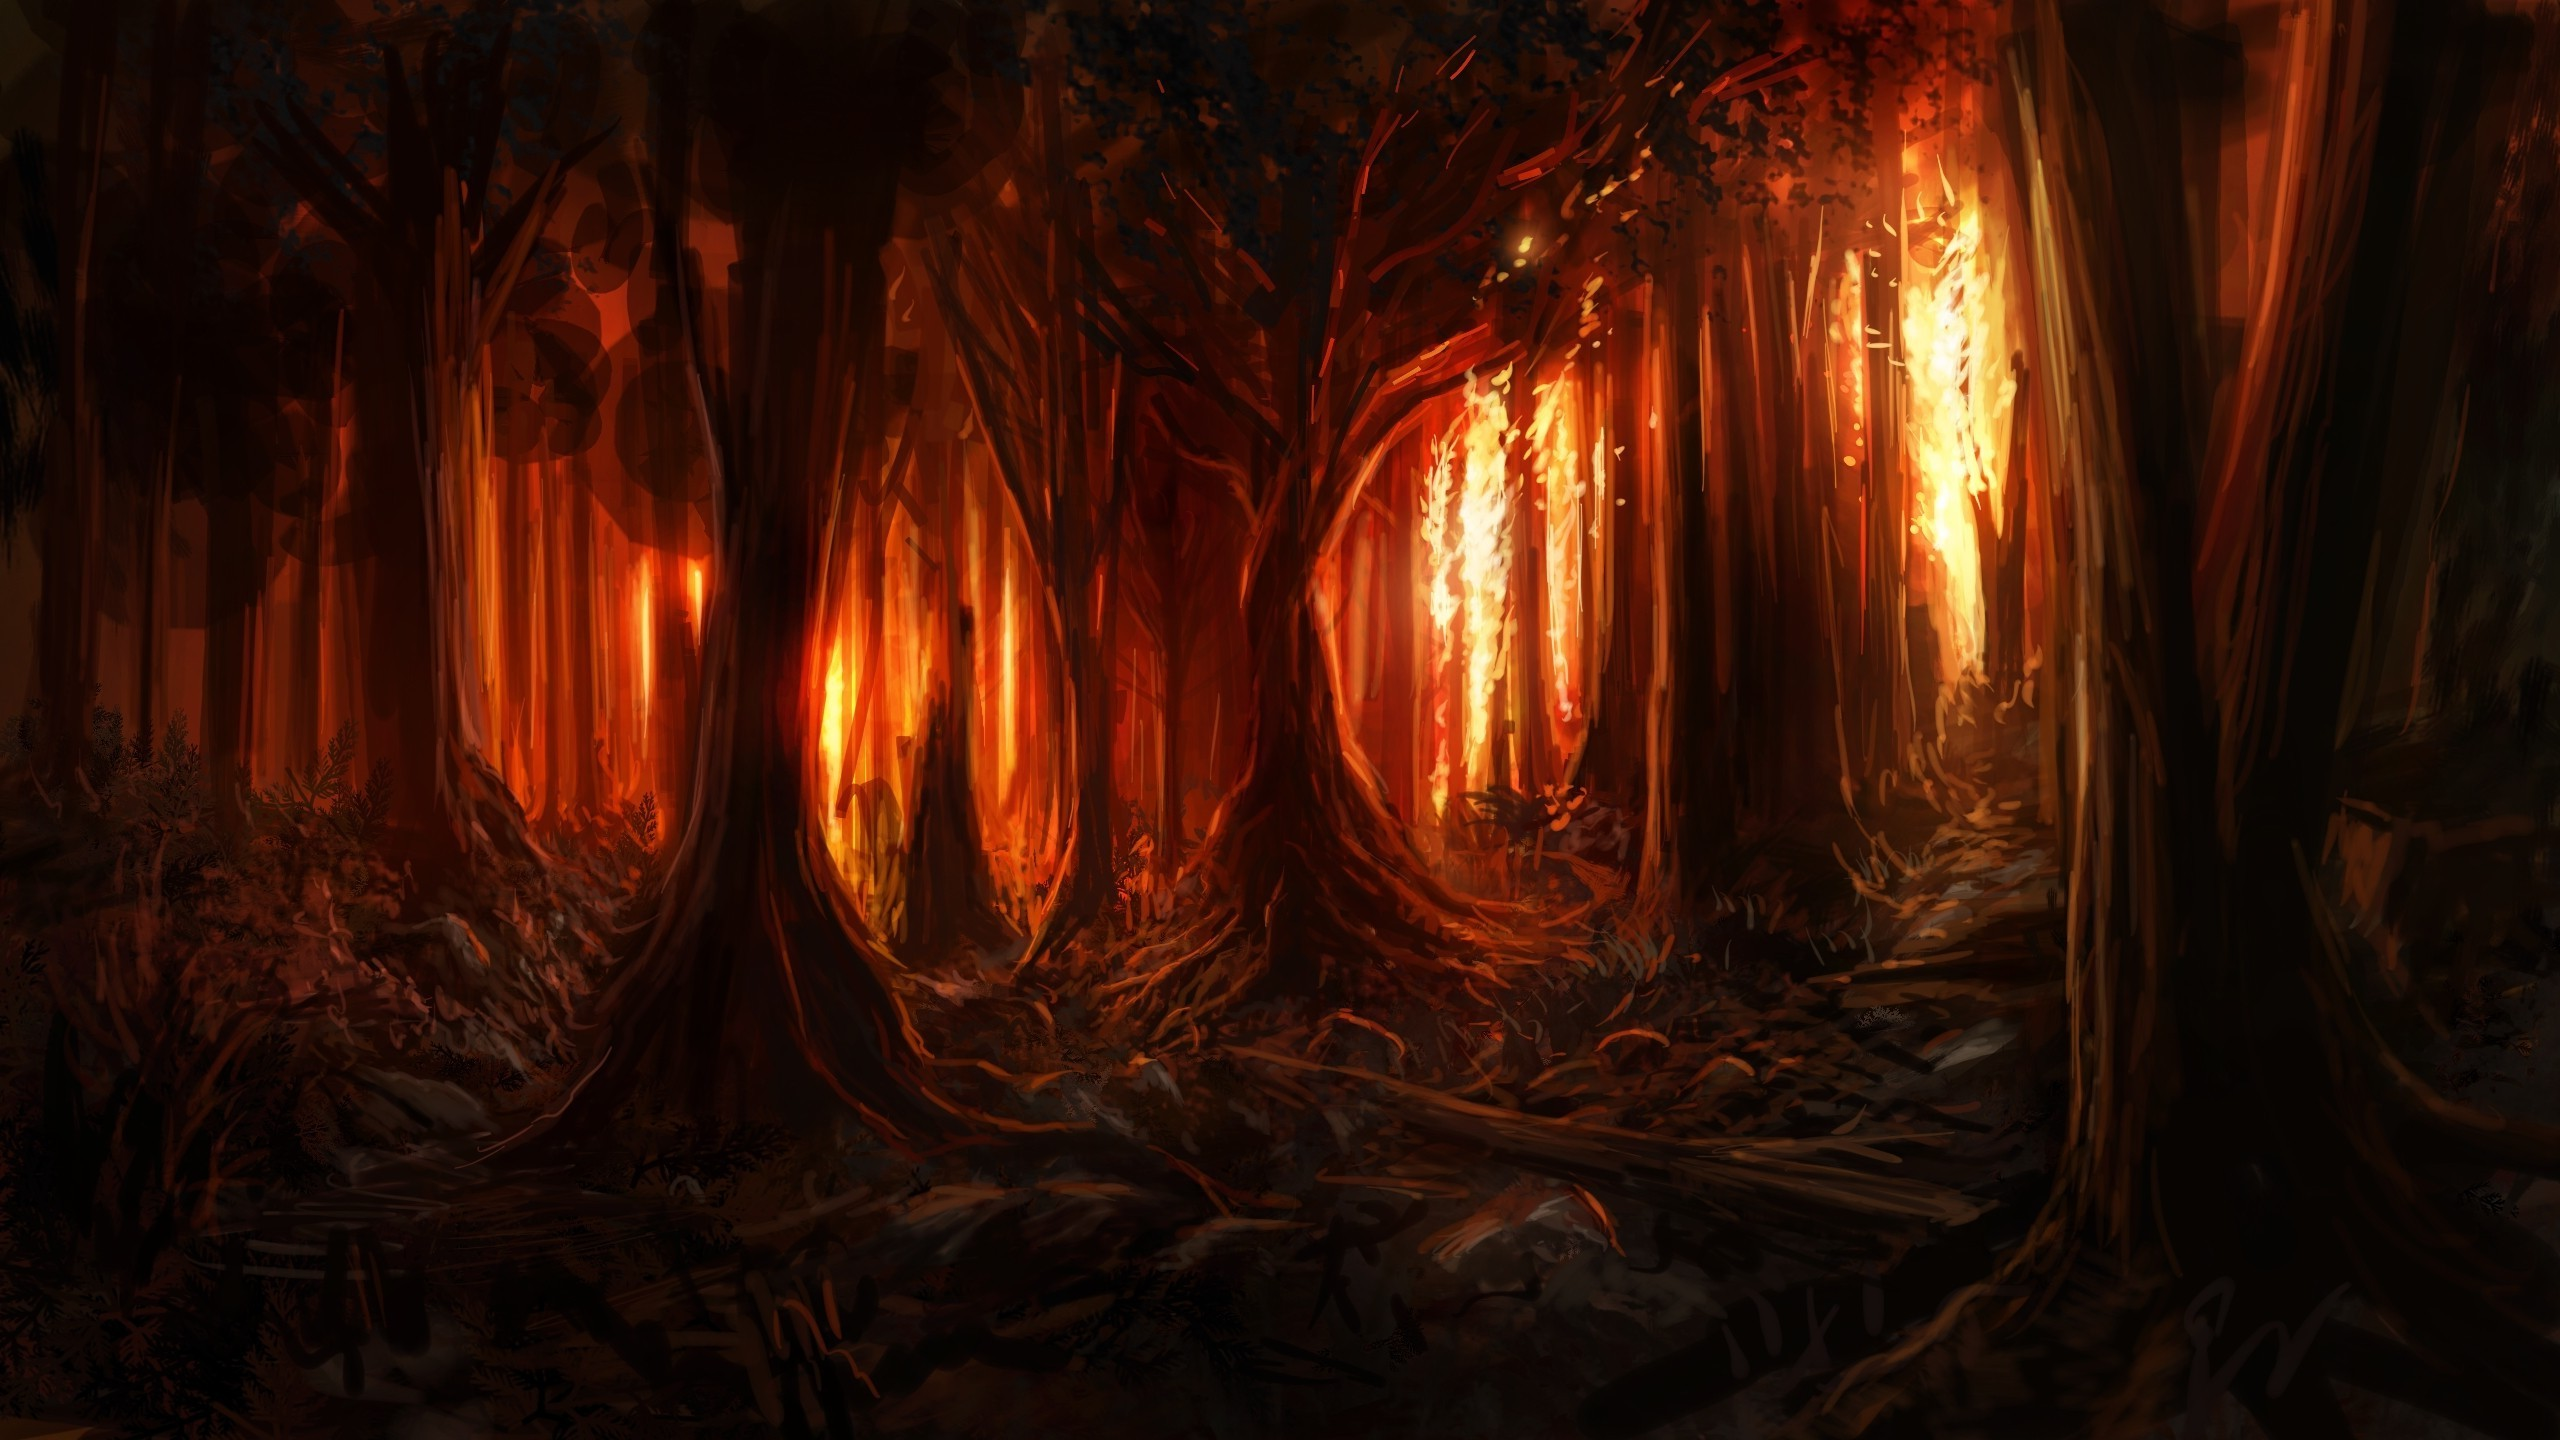 digital Art, Nature, Trees, Forest, Painting, Burning, Fire, Wood, Artwork,  Branch Wallpapers HD / Desktop and Mobile Backgrounds